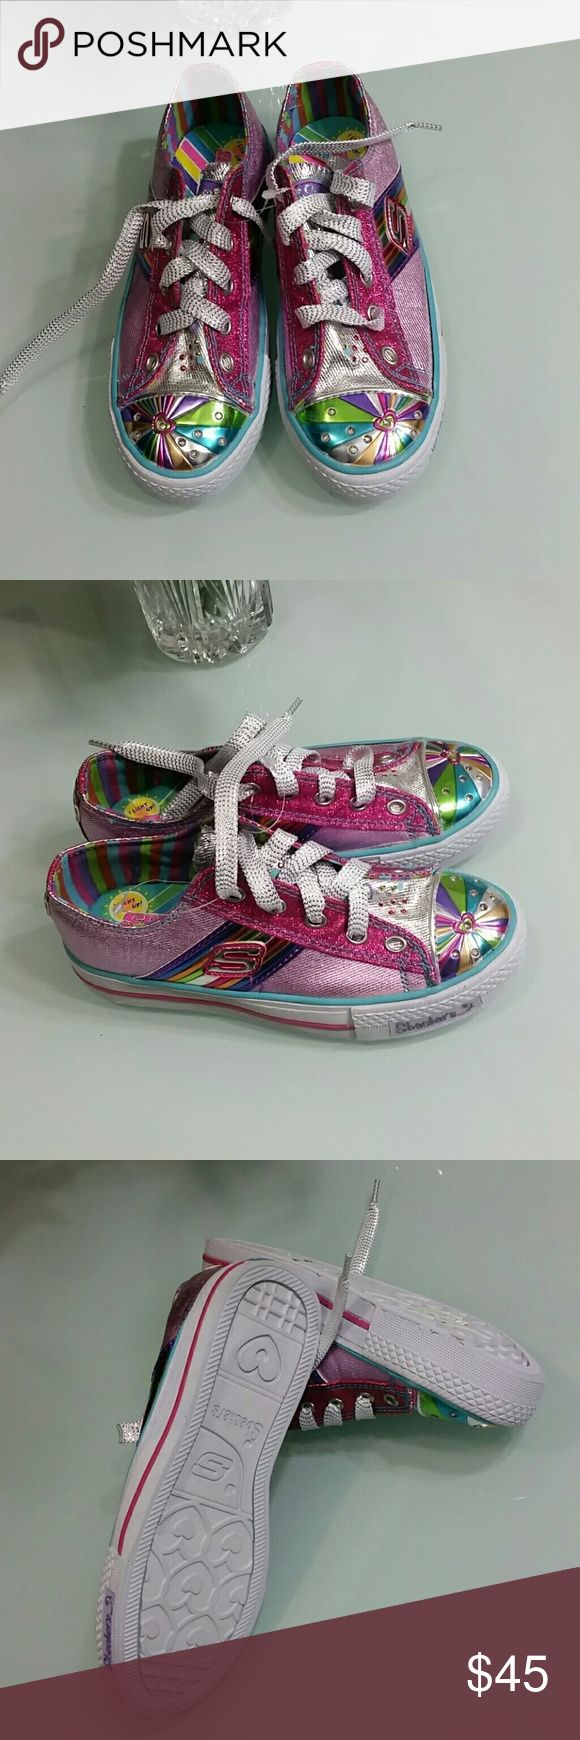 SKECHERS SPORTS light up Brand new.  Toes light up shoes . Multi colors,  very pretty . Perfect for girls. Skechers Shoes Sneakers